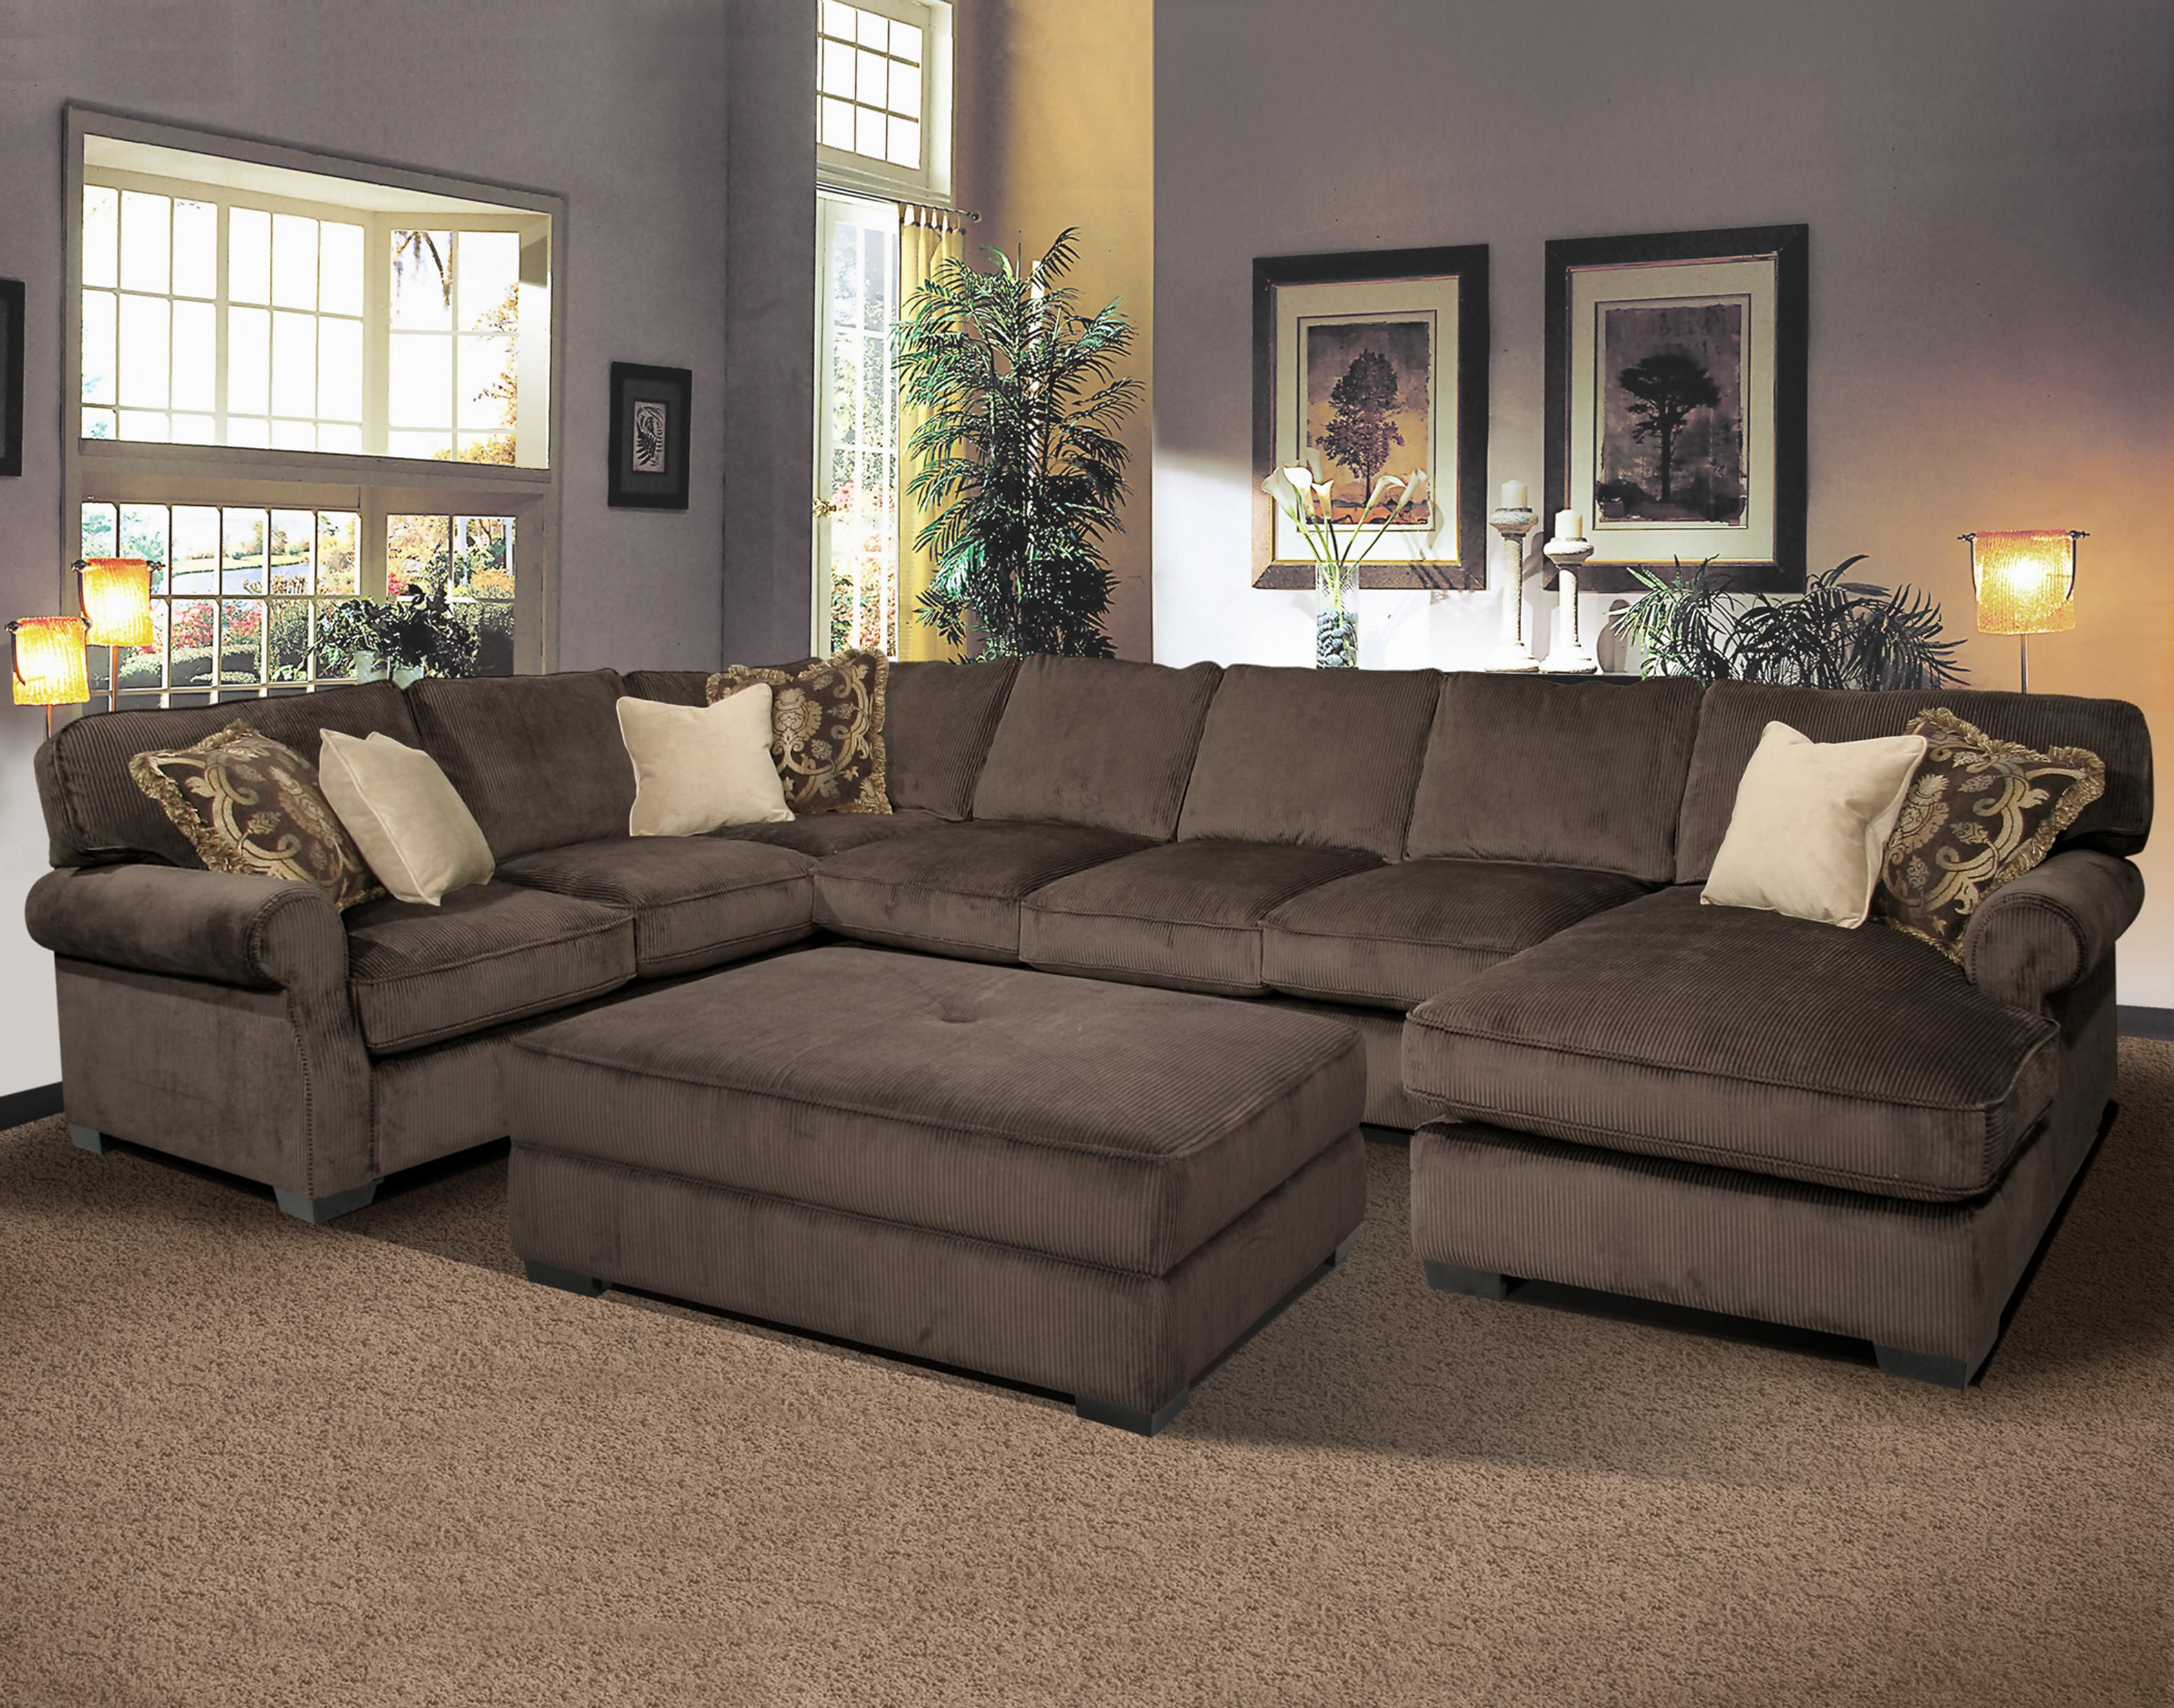 big and comfy grand island large seat sectional sofa with right harrietta piece accent table set side chaise fairmont seating ruby gordon home furnishings rochester henrietta